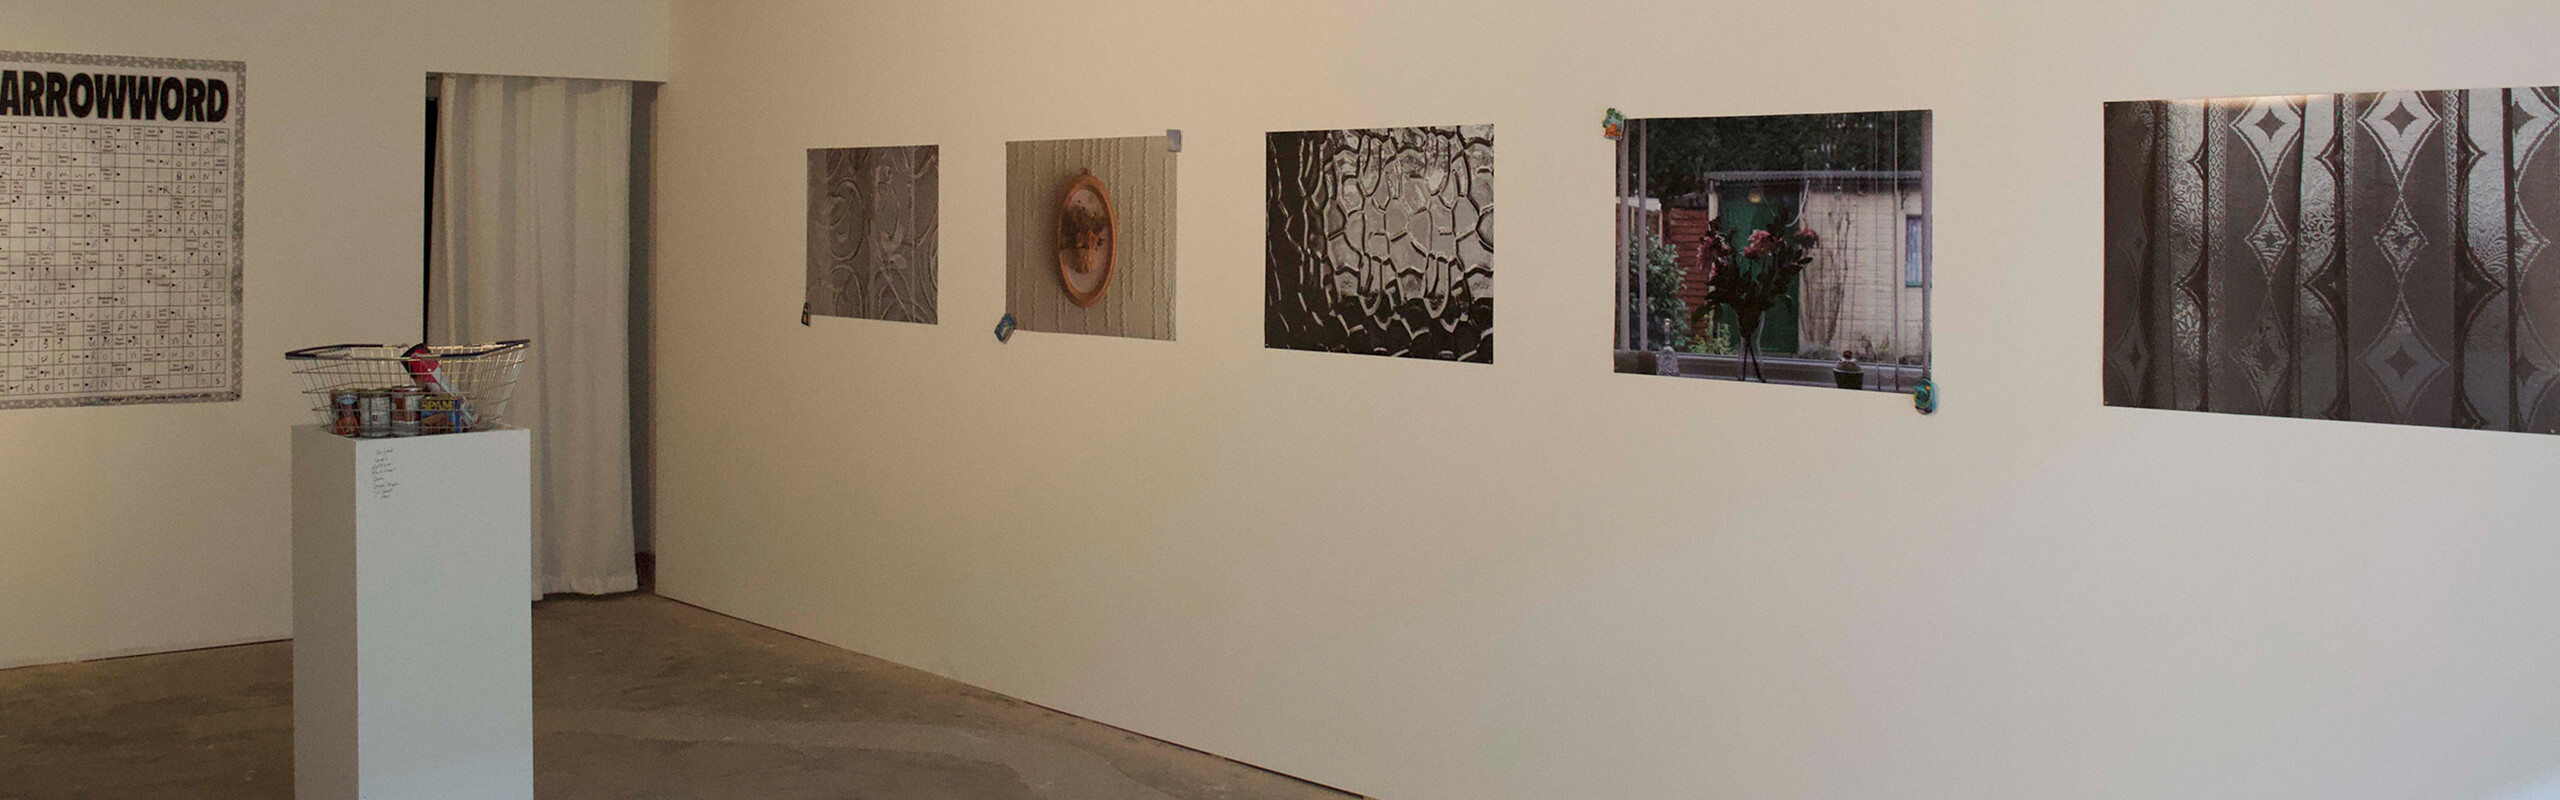 Photos on a wall in an art exhibition